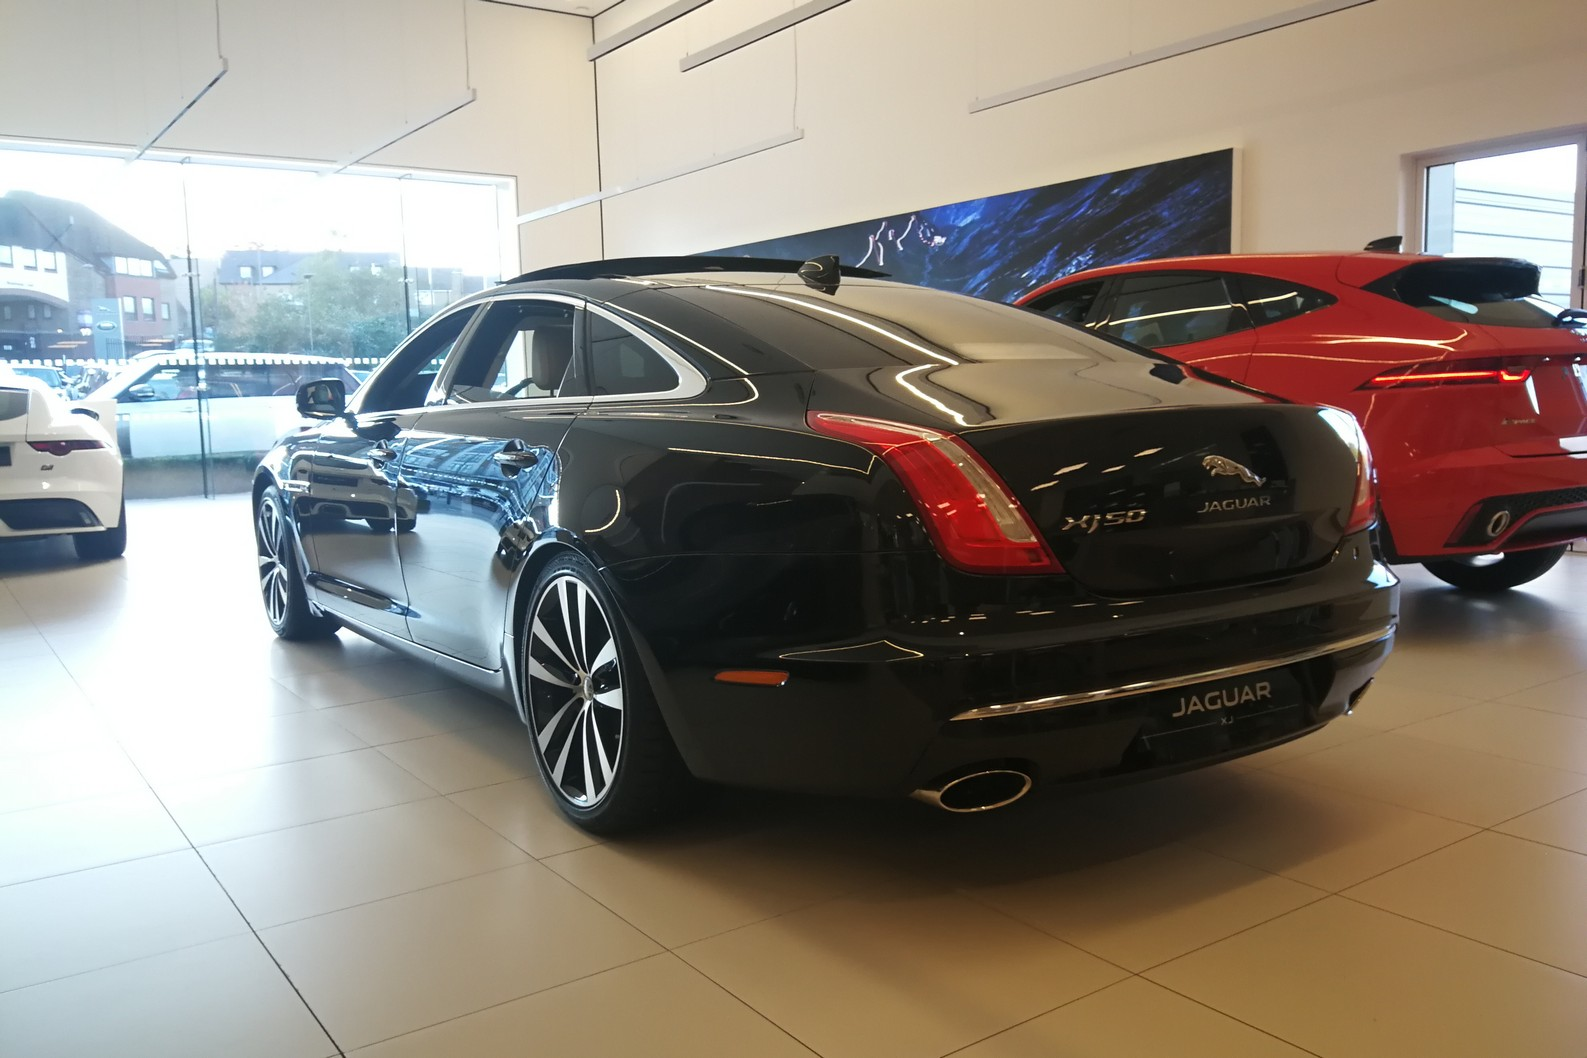 Jaguar XJ 3.0d V6 XJ50 LWB - Delivery Mileage - Surround Camera - Heated and cooled S image 4